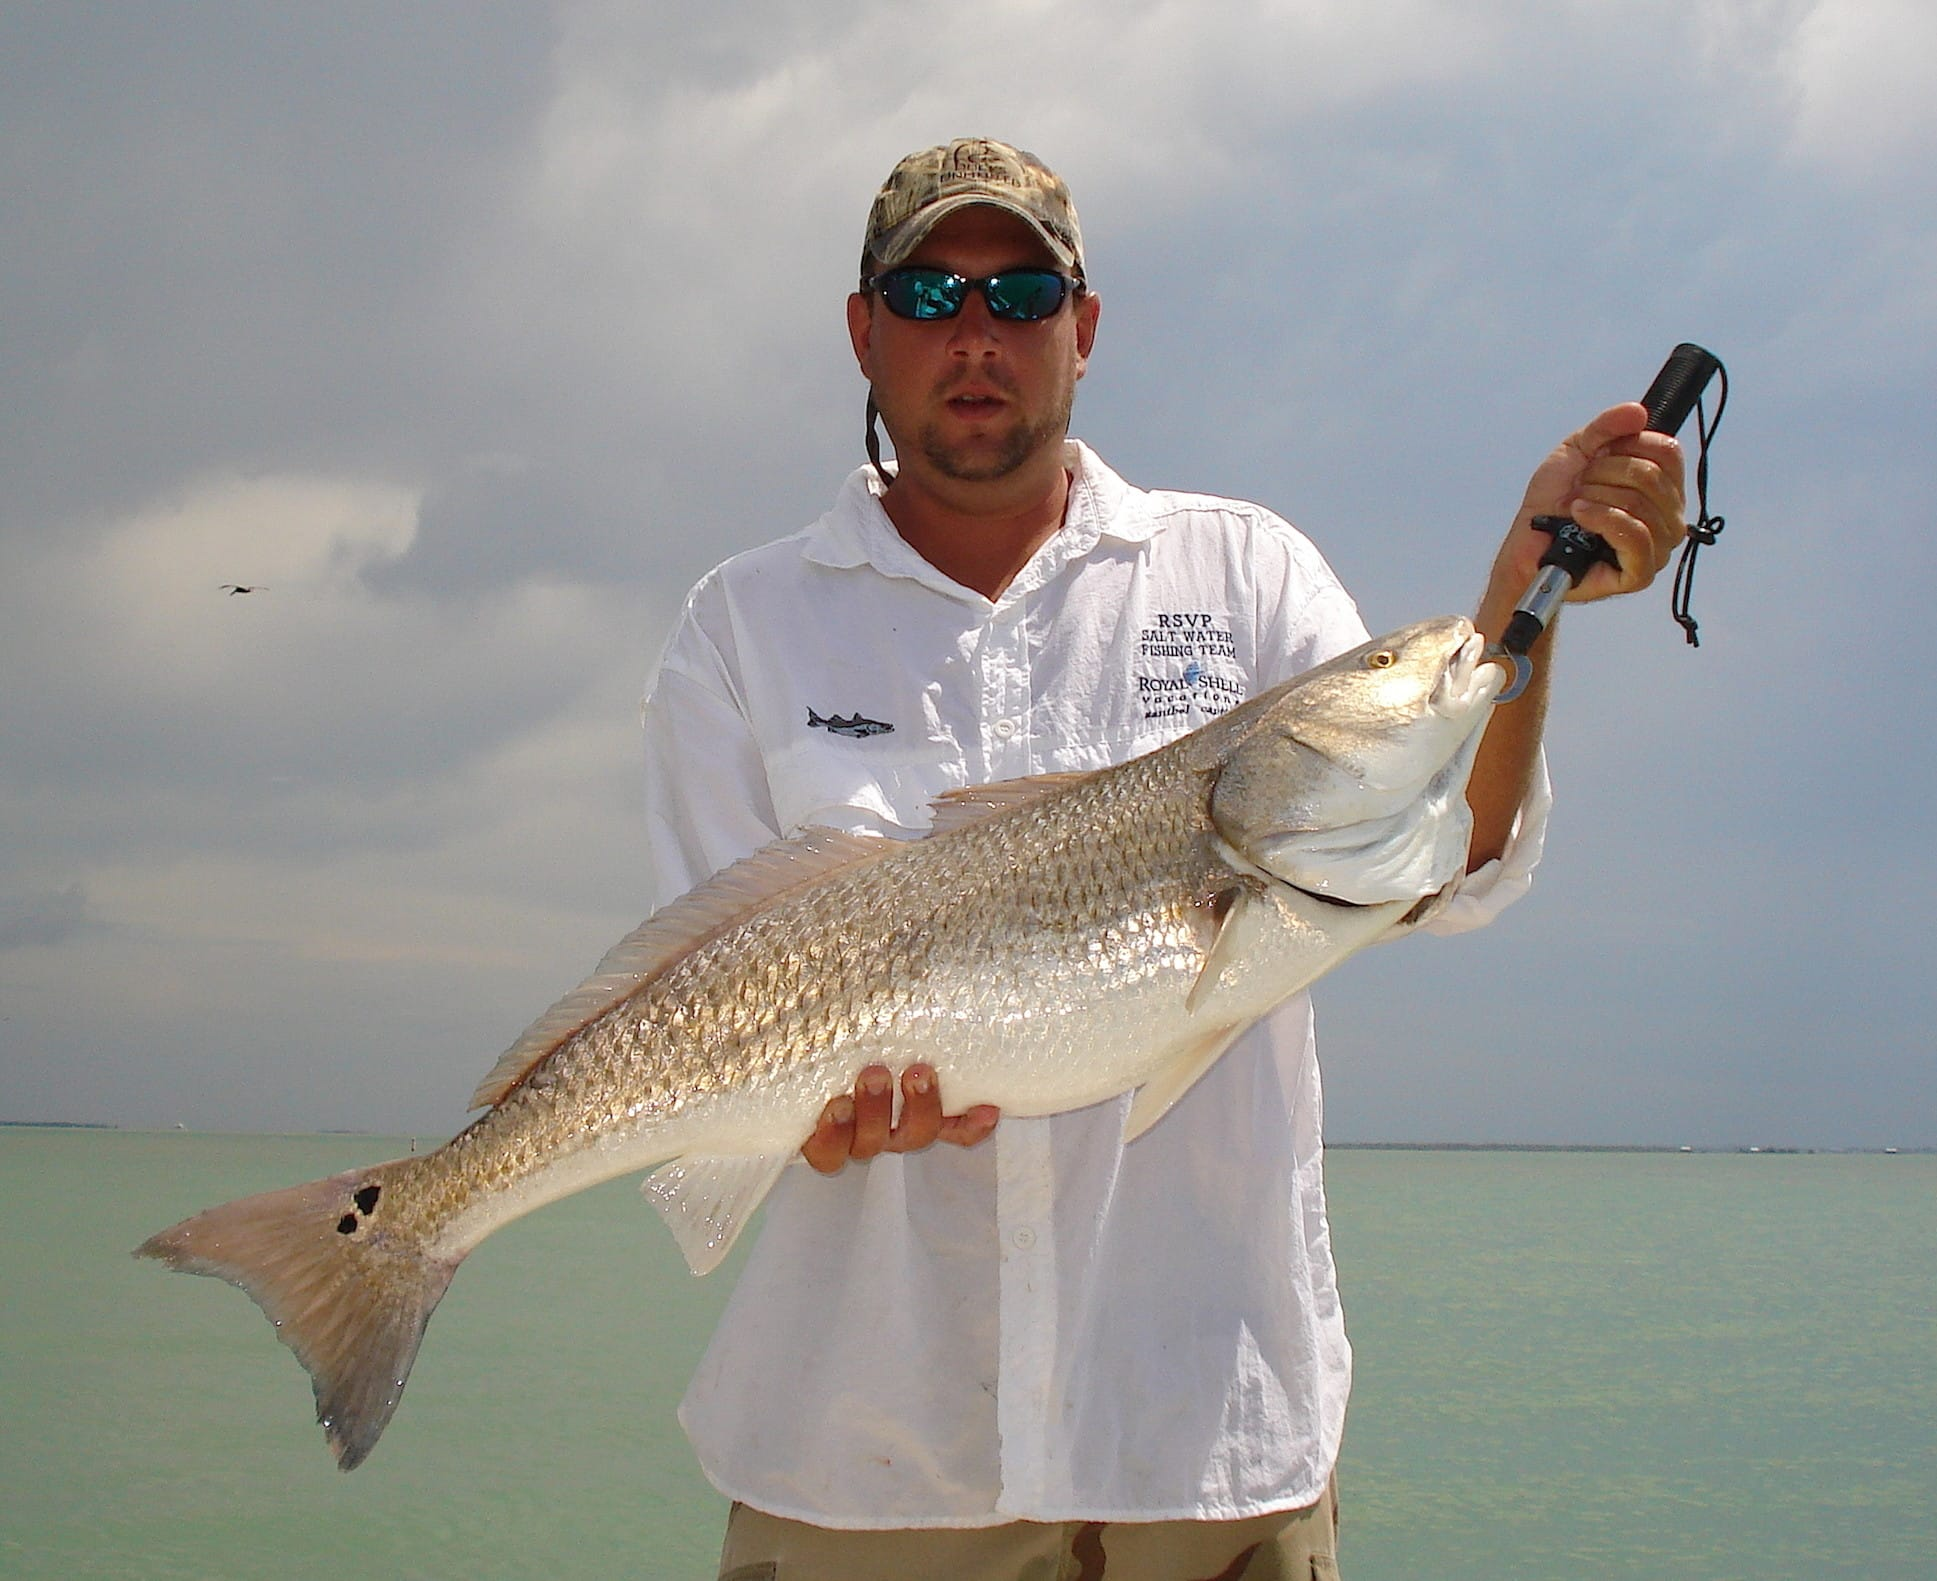 Fort myers fishing report 8 5 14 redfish fortmyers for Half day fishing trips fort myers